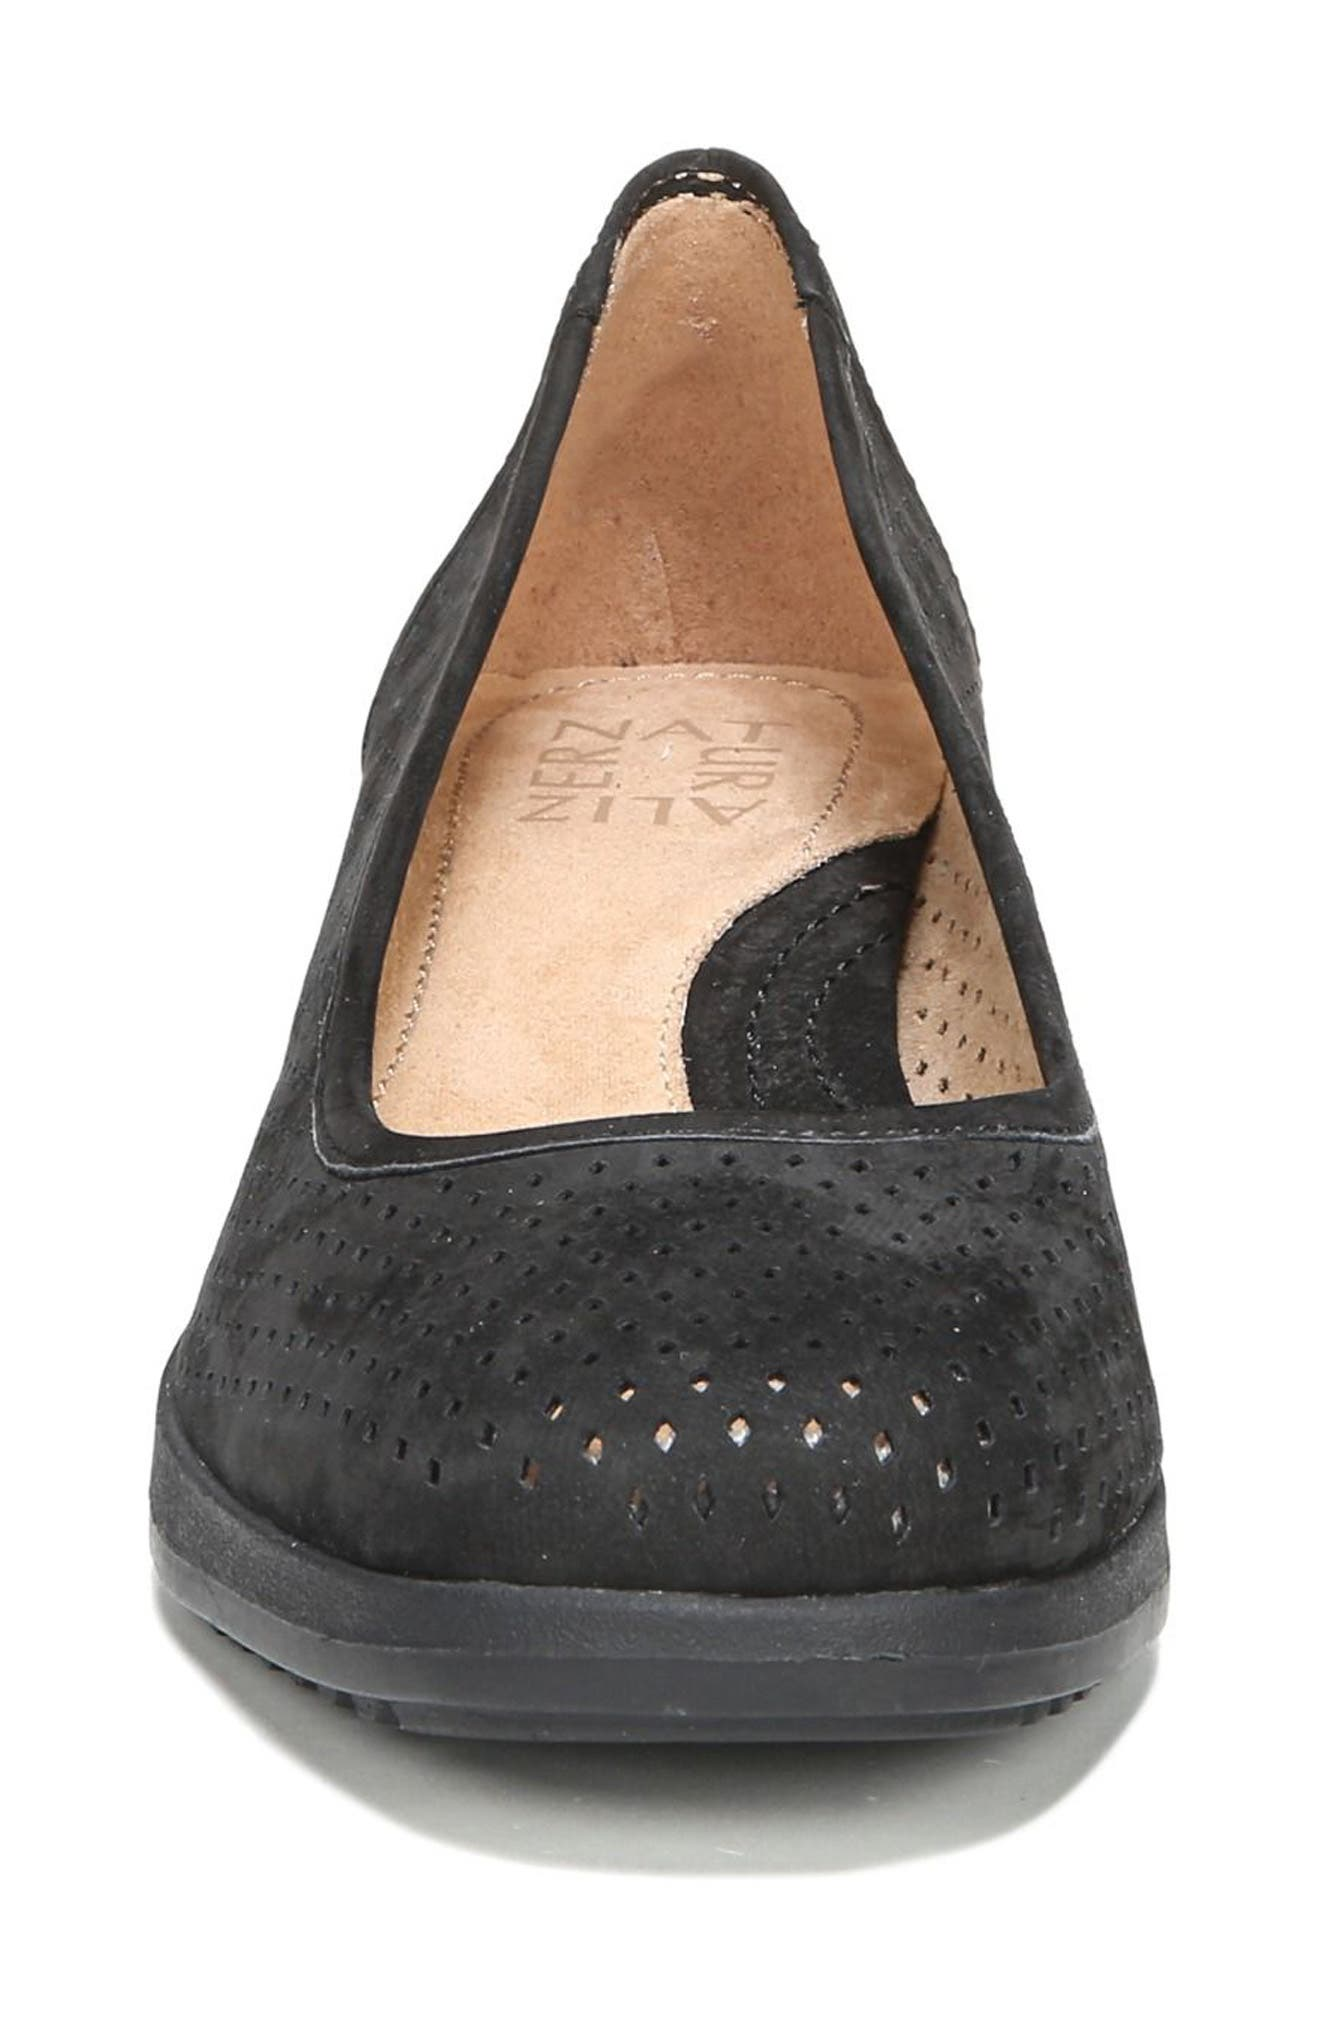 Betina II Wedge,                             Alternate thumbnail 4, color,                             Black Leather